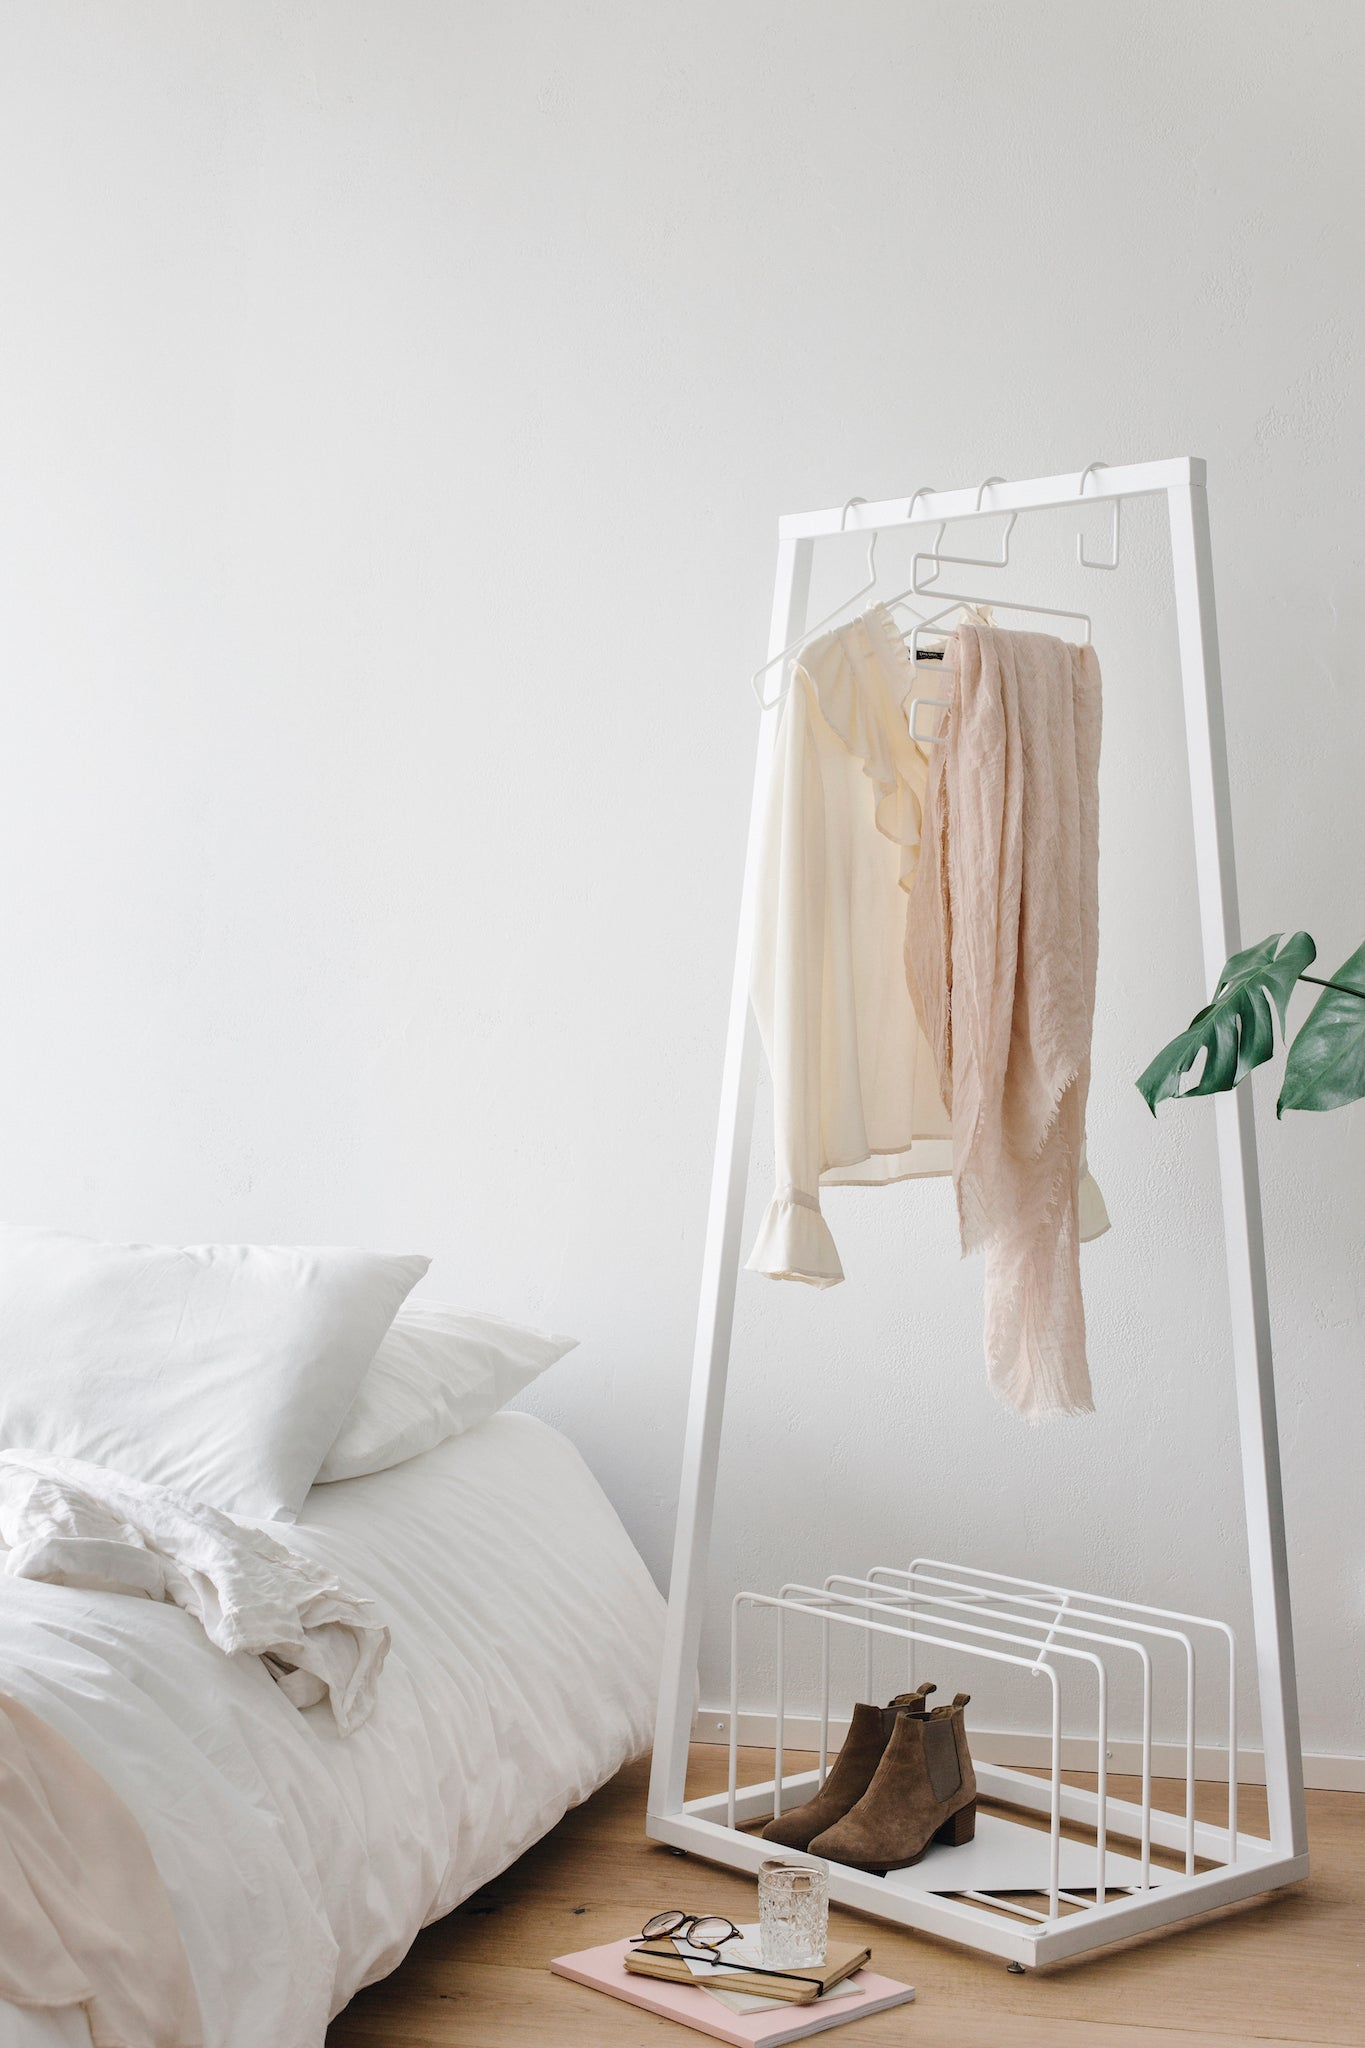 BEdesign-spring-lookbook-coatstand-coatrack-organization-wardrobe